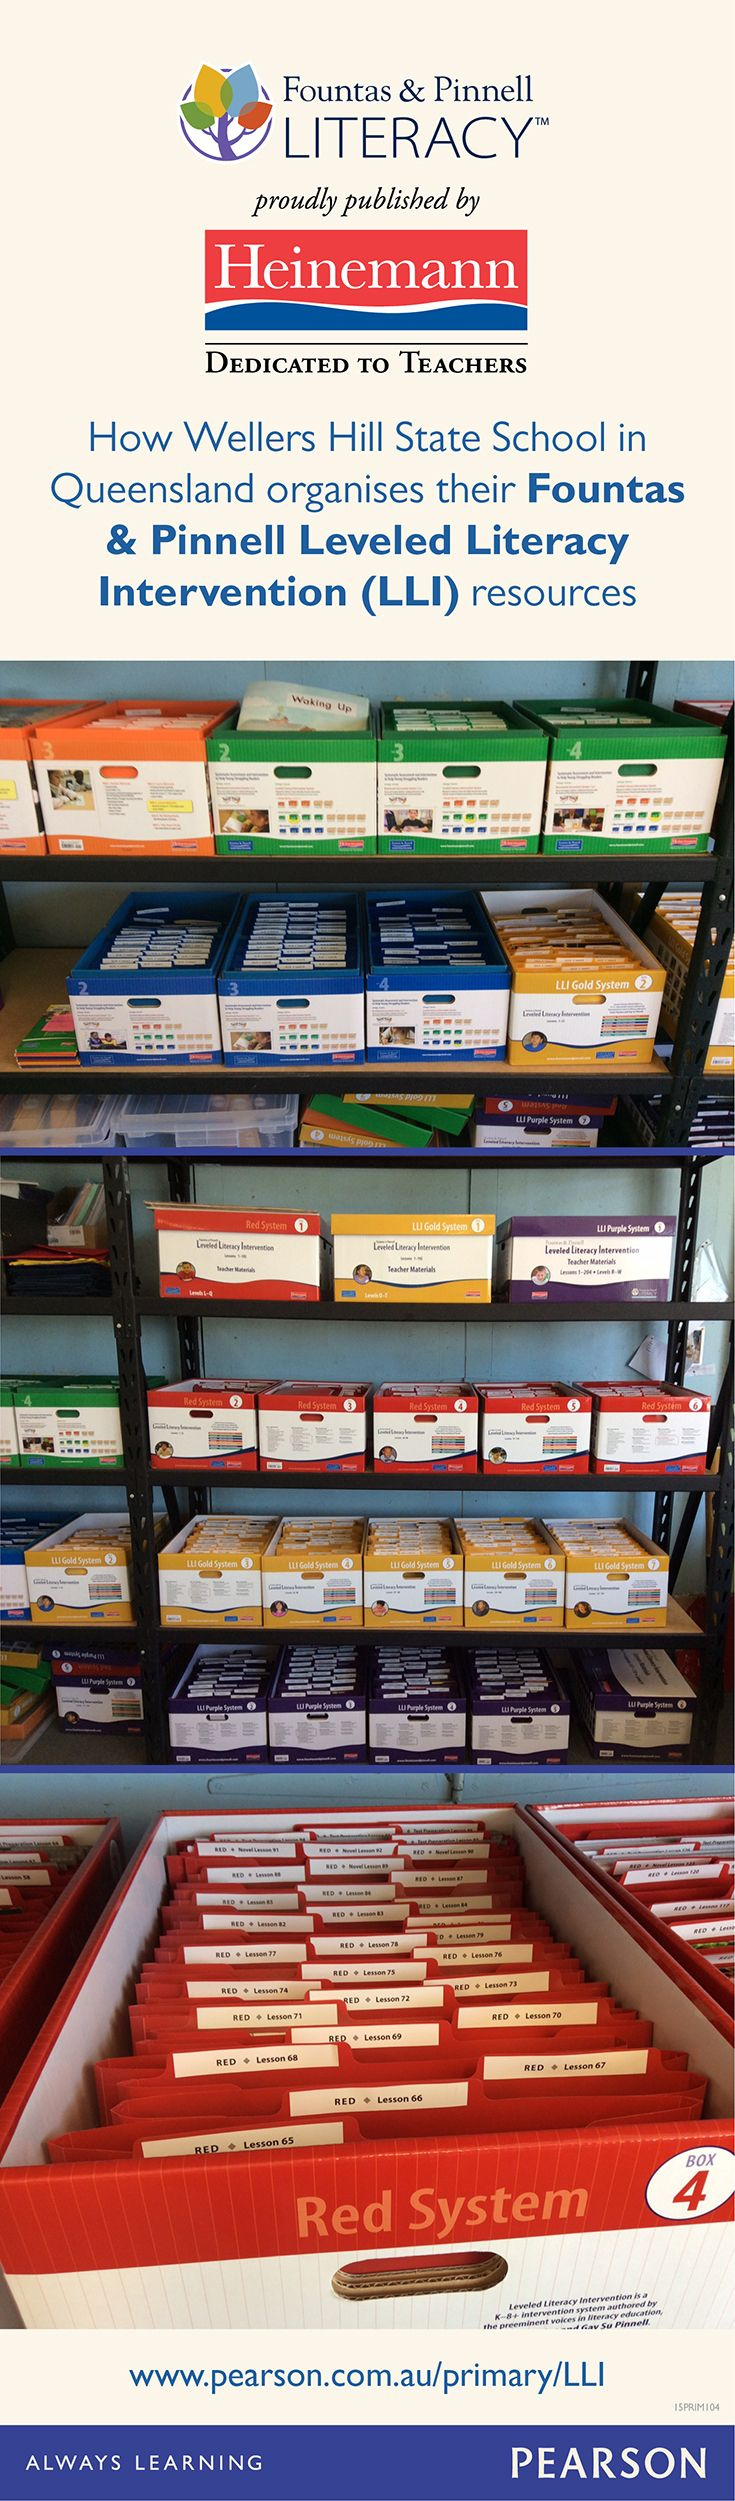 How Wellers Hill State School in Queensland organises their Fountas & Pinnell Leveled Literacy Intervention (LLI) resources